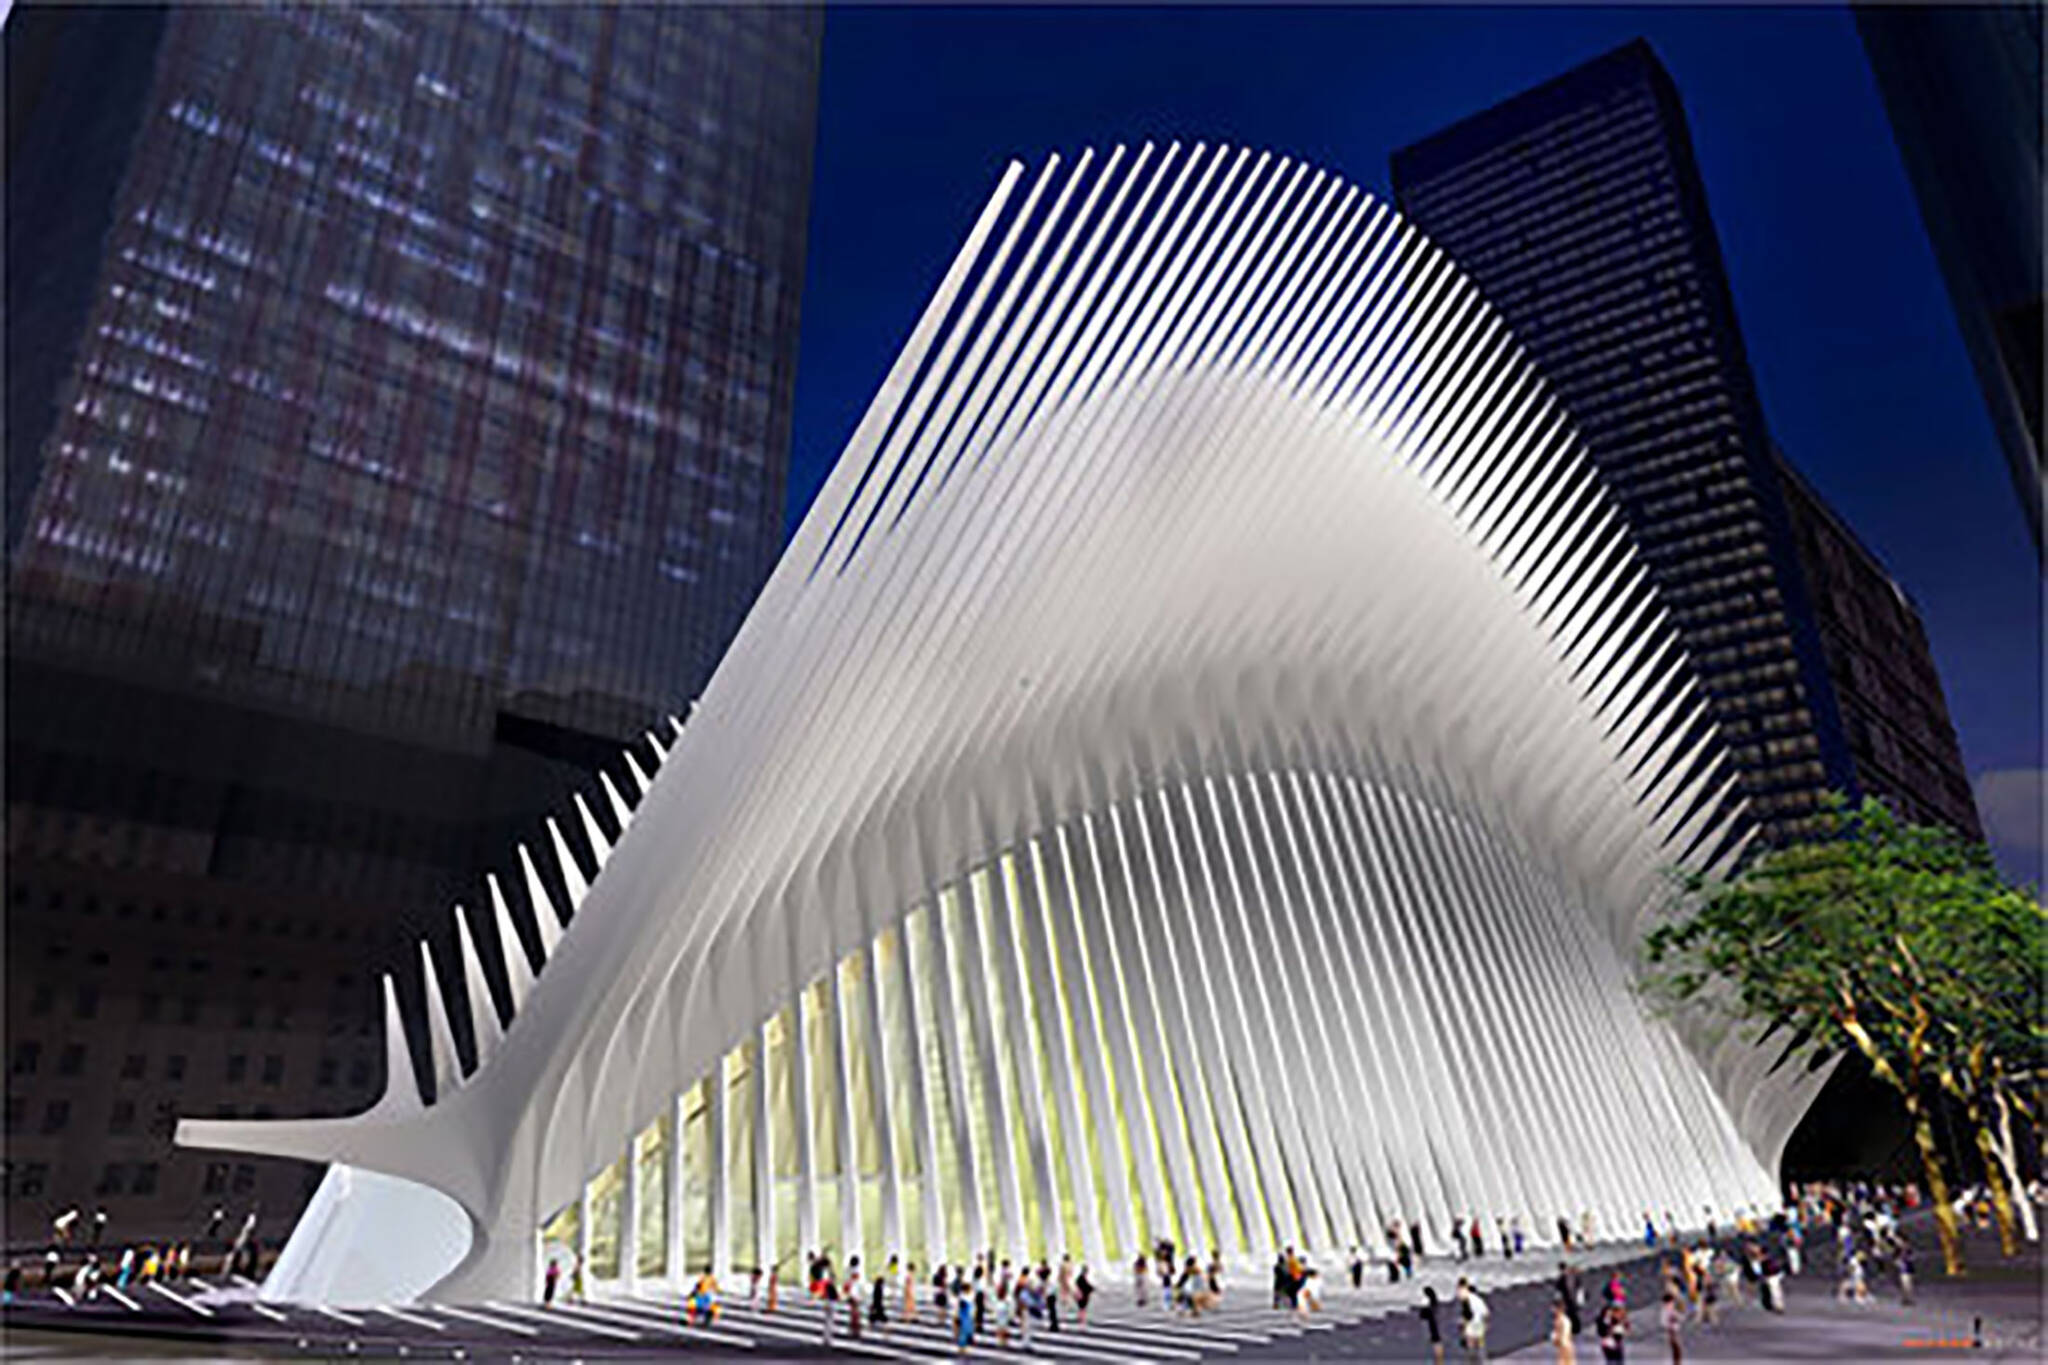 The Oculus designed by Santiago Calatrava as seen on the Rising: Rebuilding Ground Zero documentary Co-produced by Danny Forster and Steven Spielberg about the rebuilding of the World Trade Center site in the wake of 9/11.